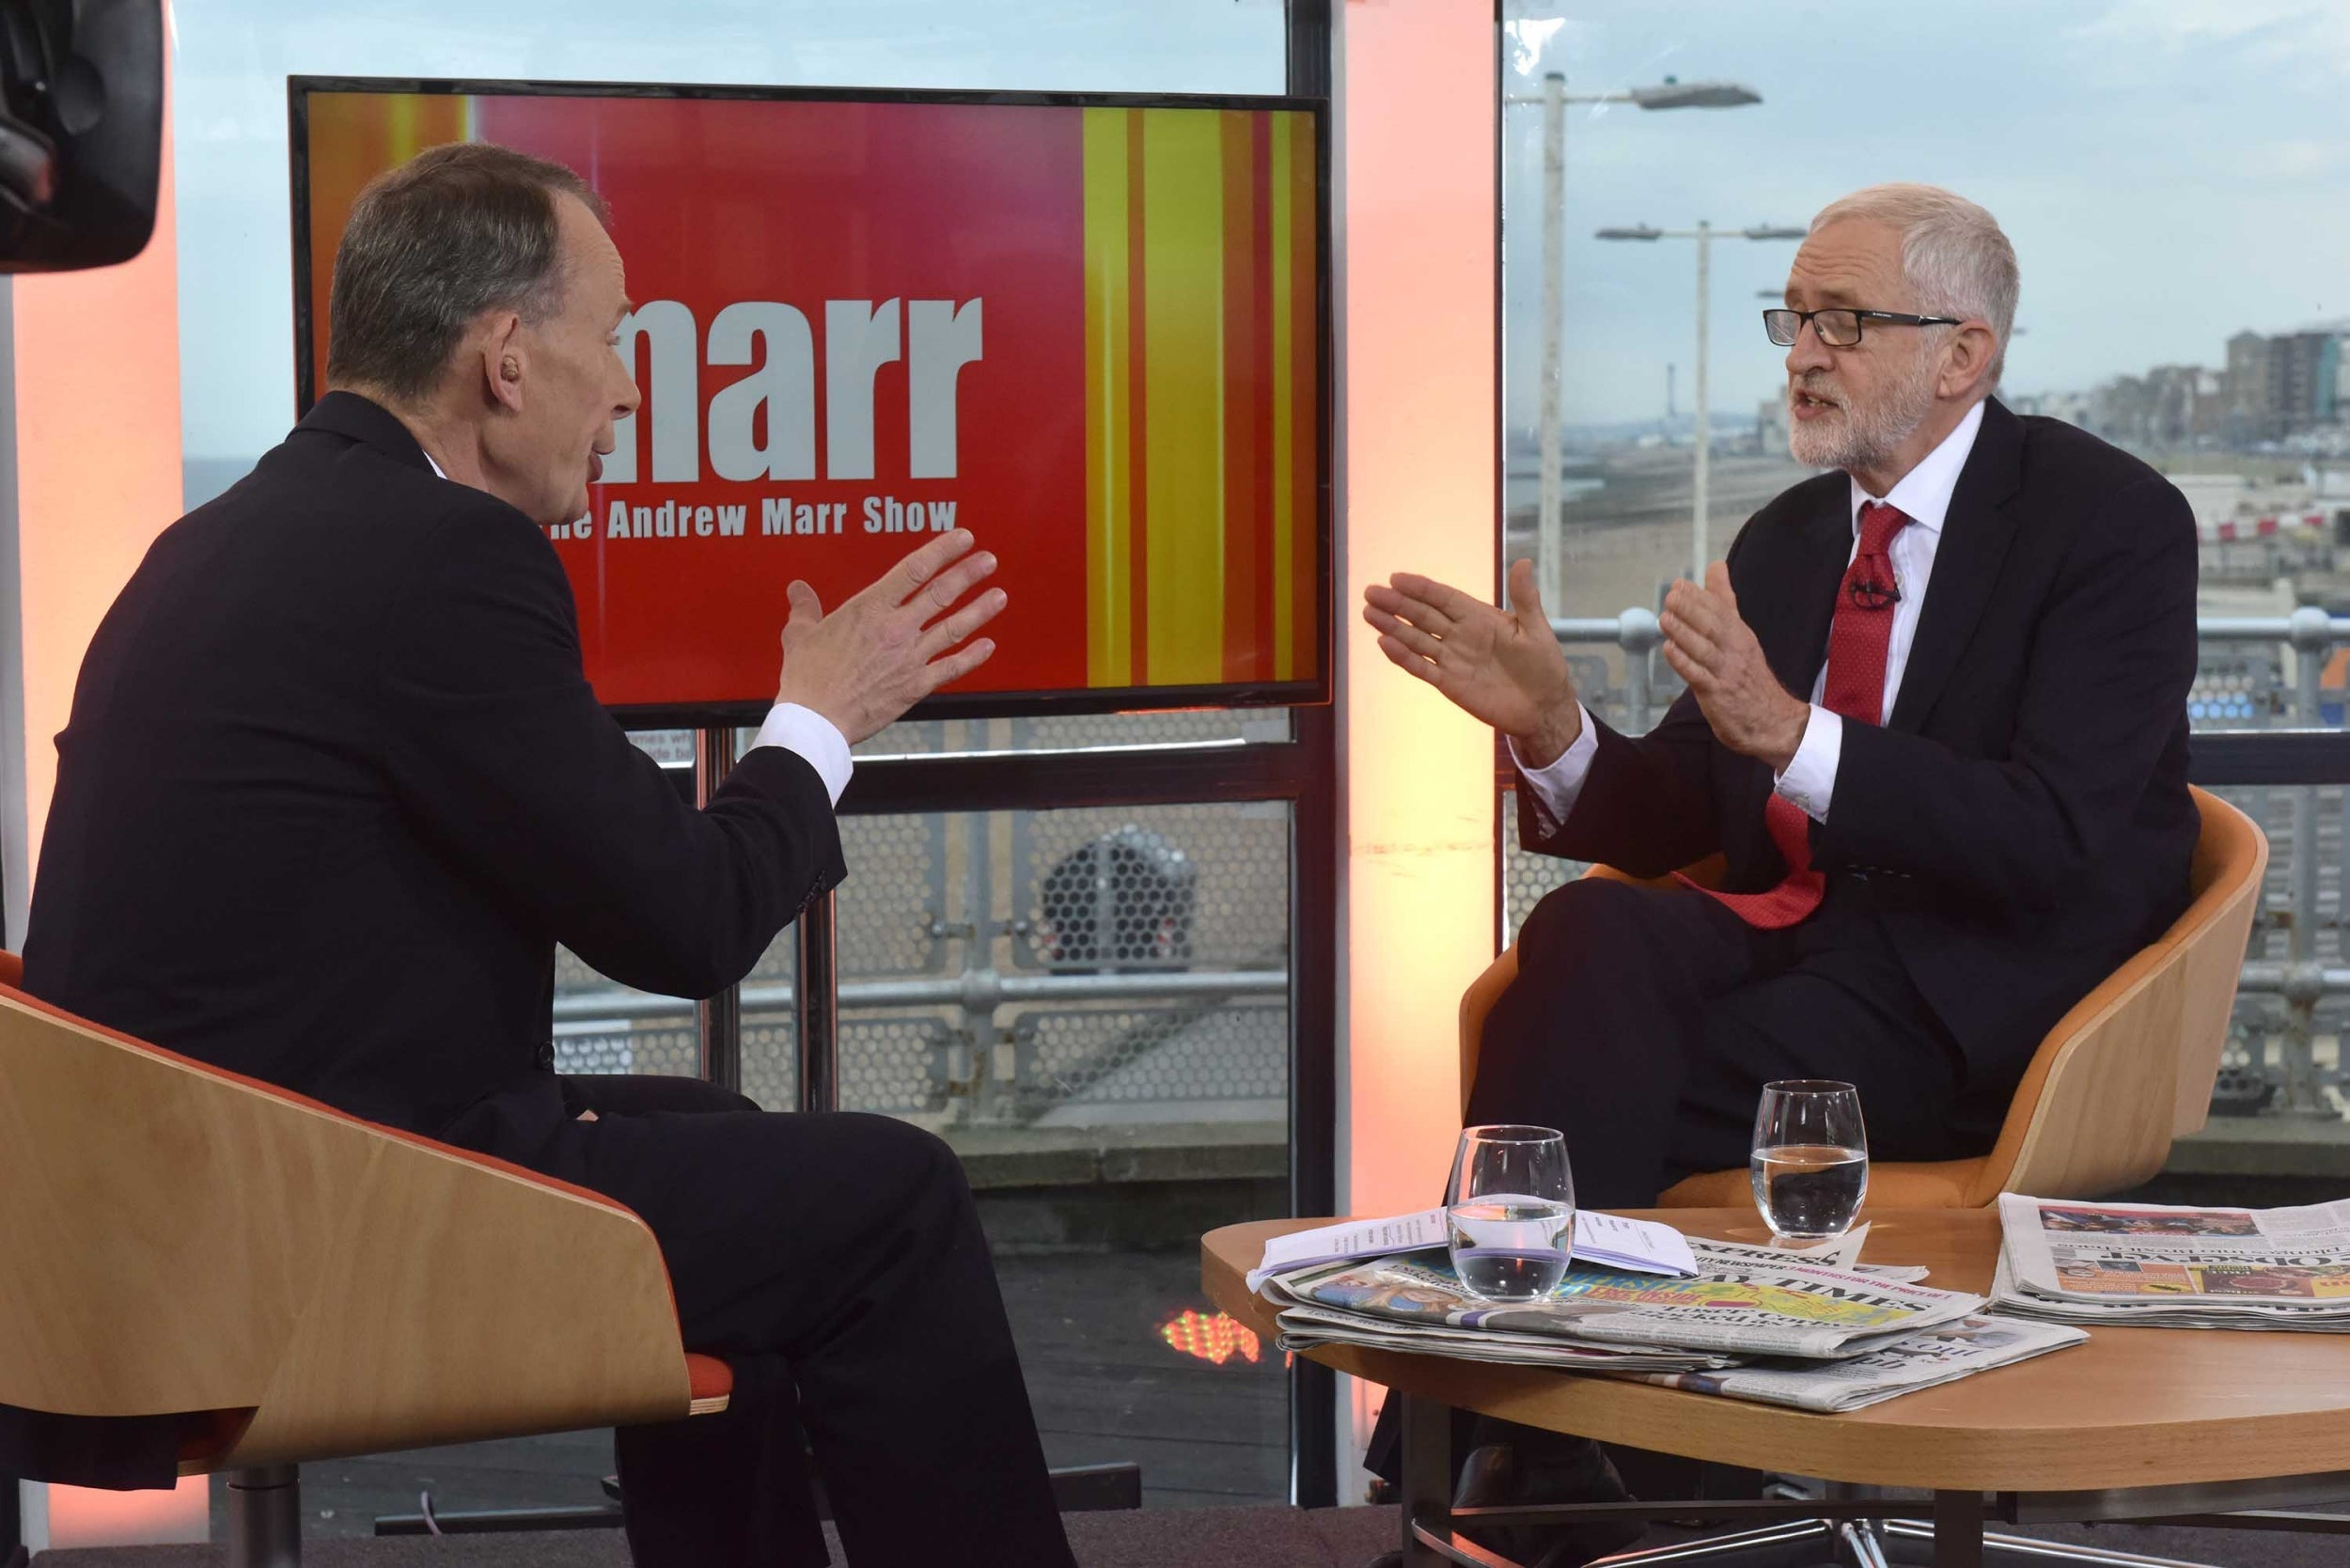 'They close ranks': Jeremy Corbyn accuses Andrew Marr of establishment bias after BBC interview